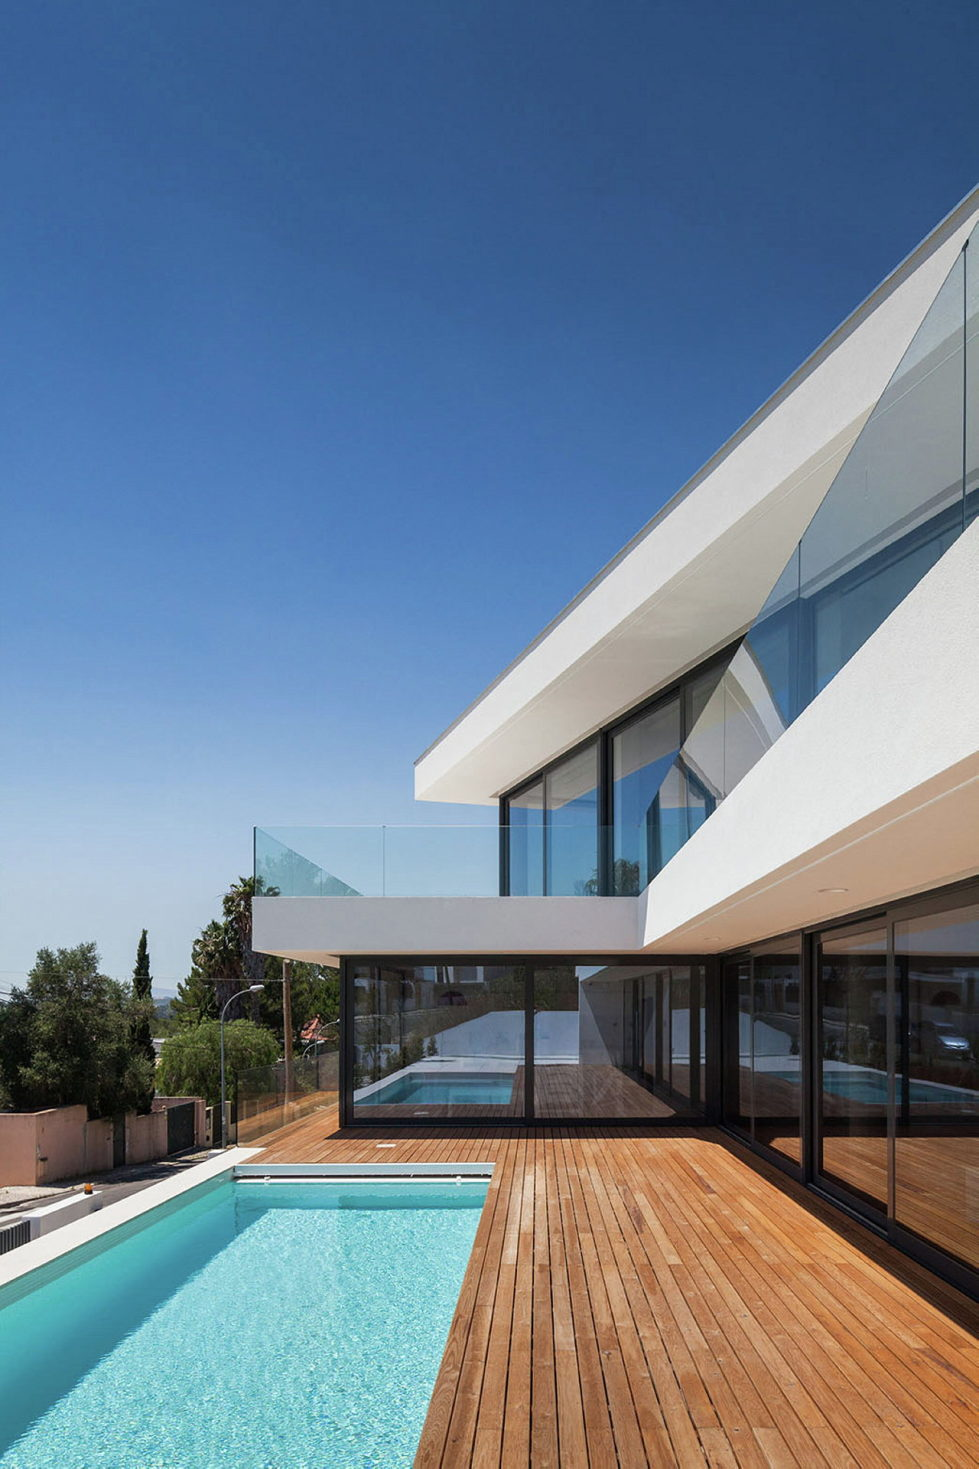 JC House Villa At The Suburb Of Lisbon, Portugal, Upon The Project Of JPS Atelier 4